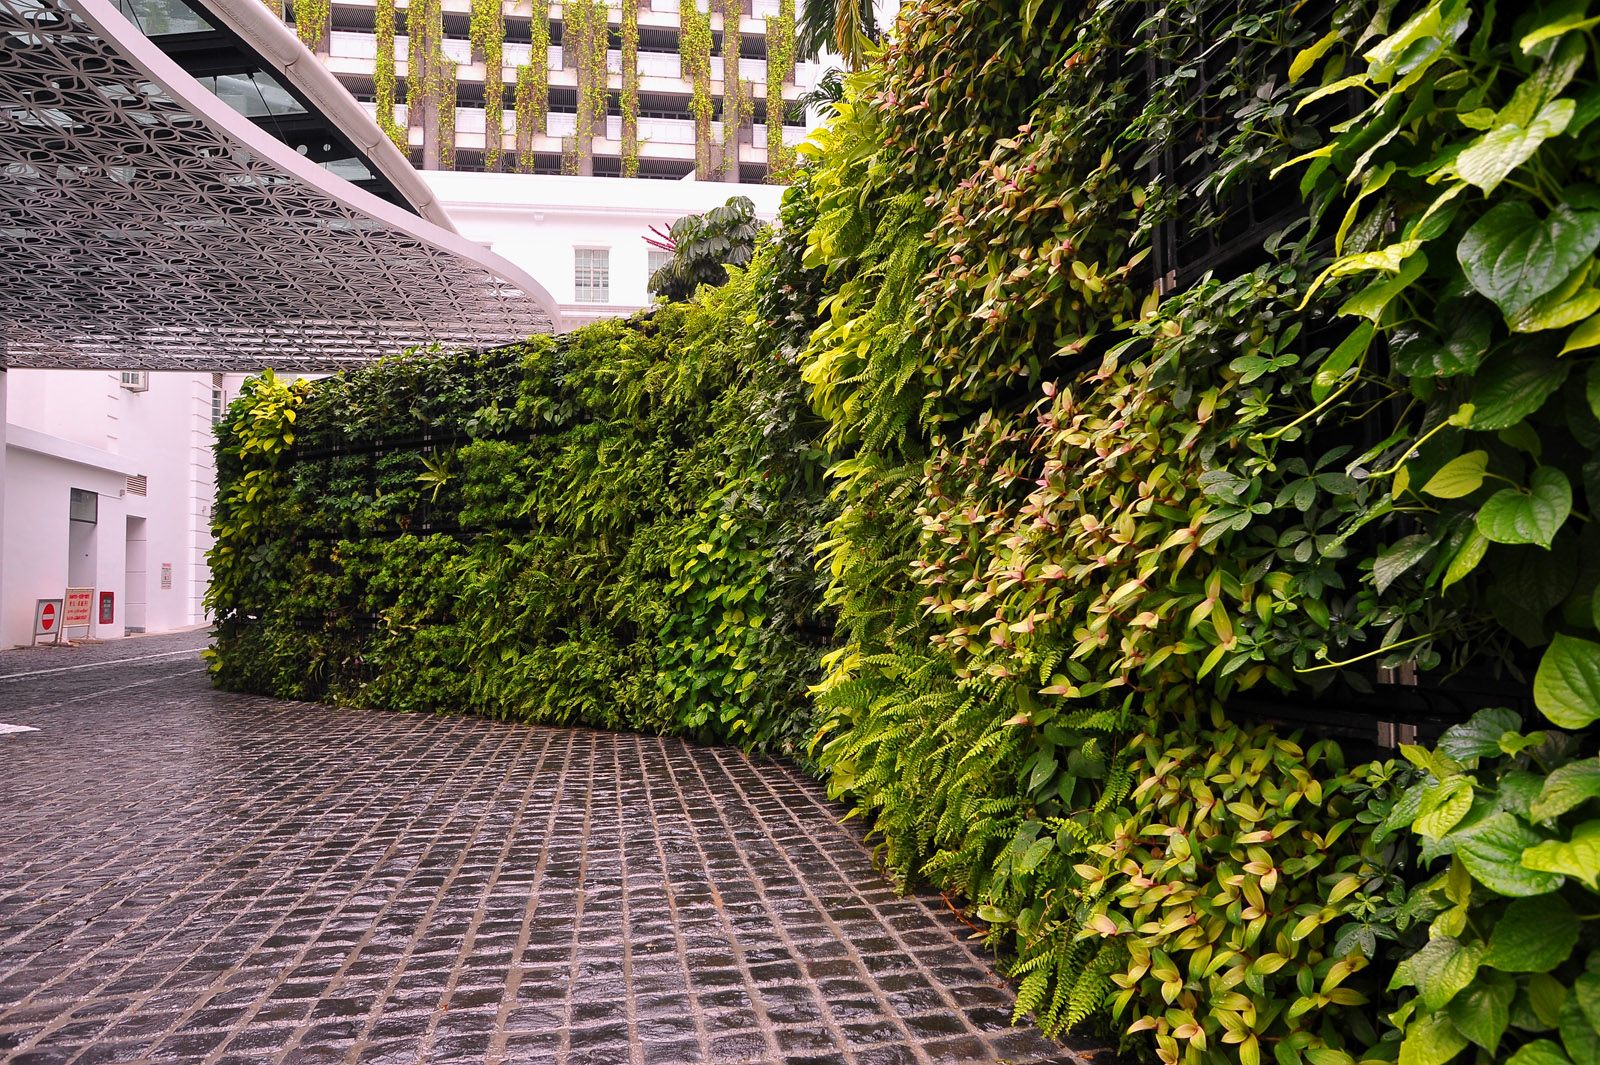 Elmich Vgm Green Wall Rendezvous Hotel Singapore